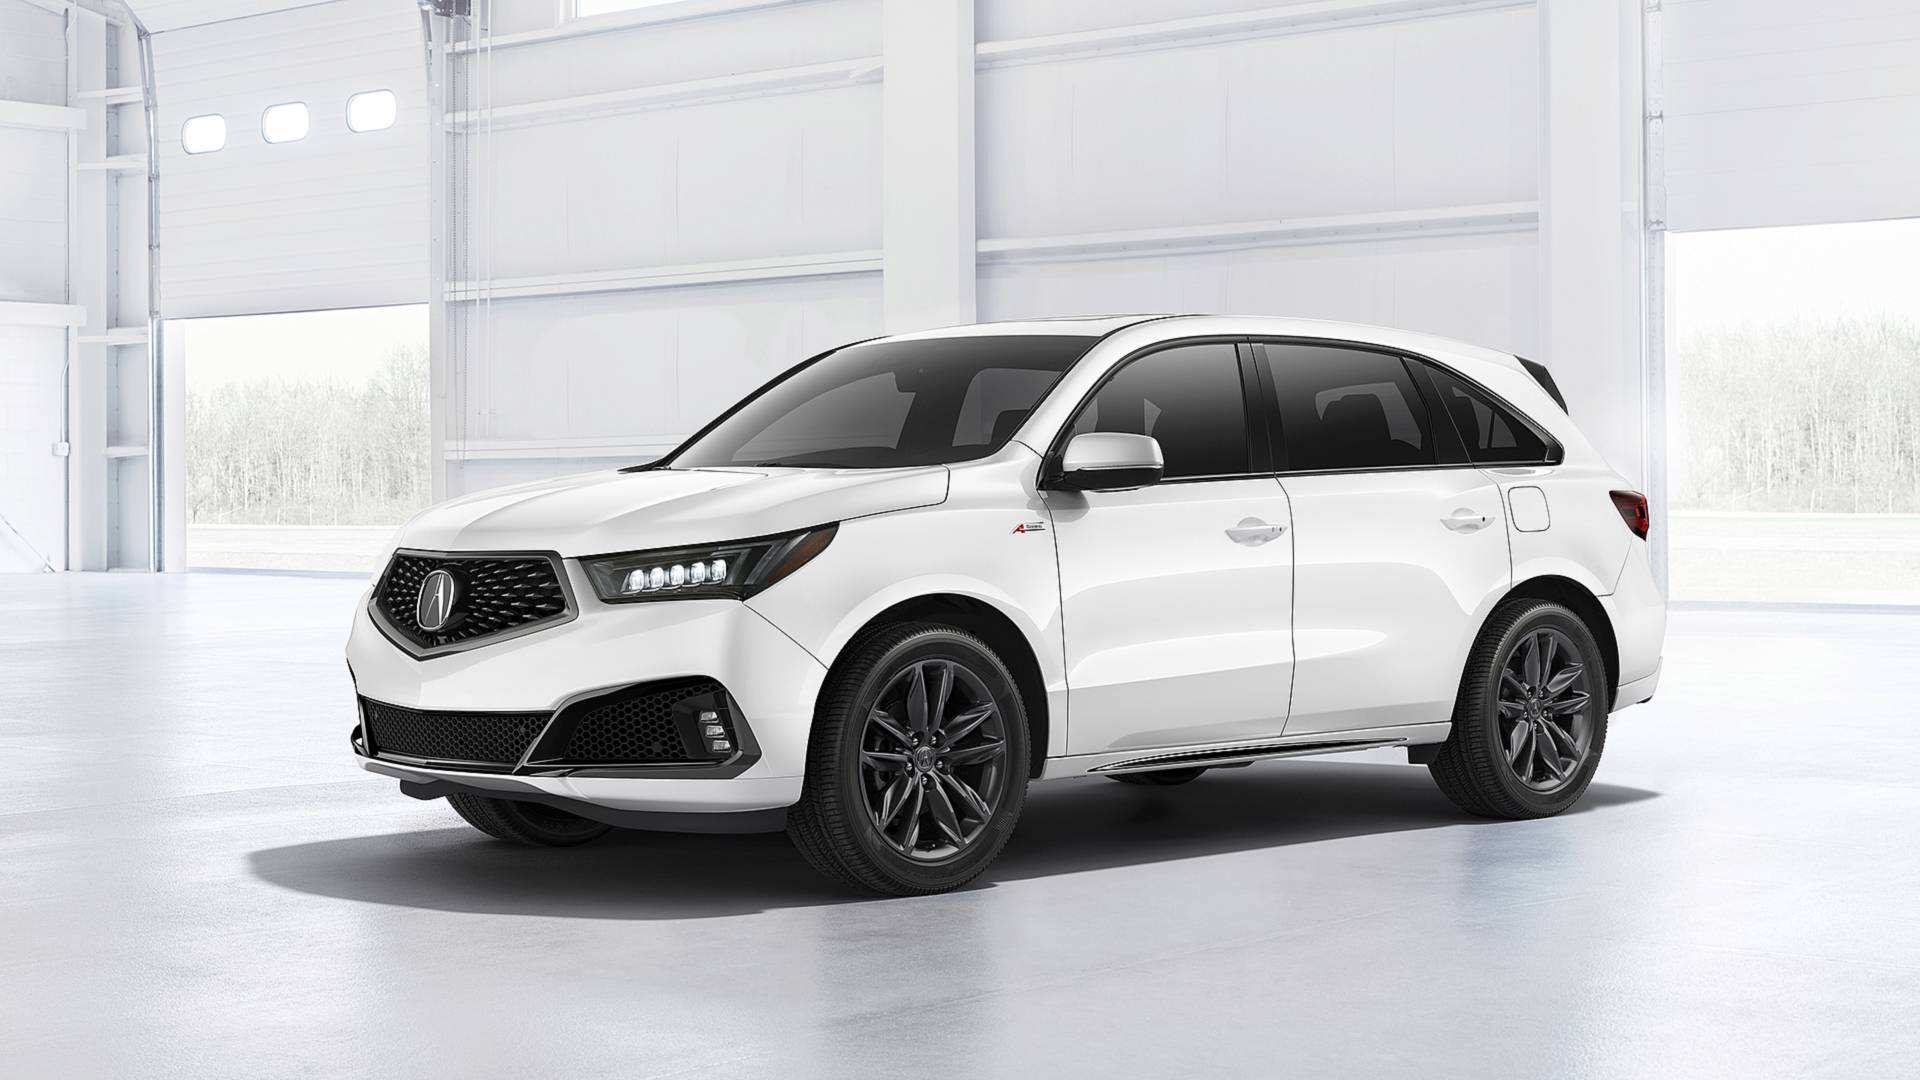 46 A Acura Mdx 2020 Spy Shots Redesign And Concept